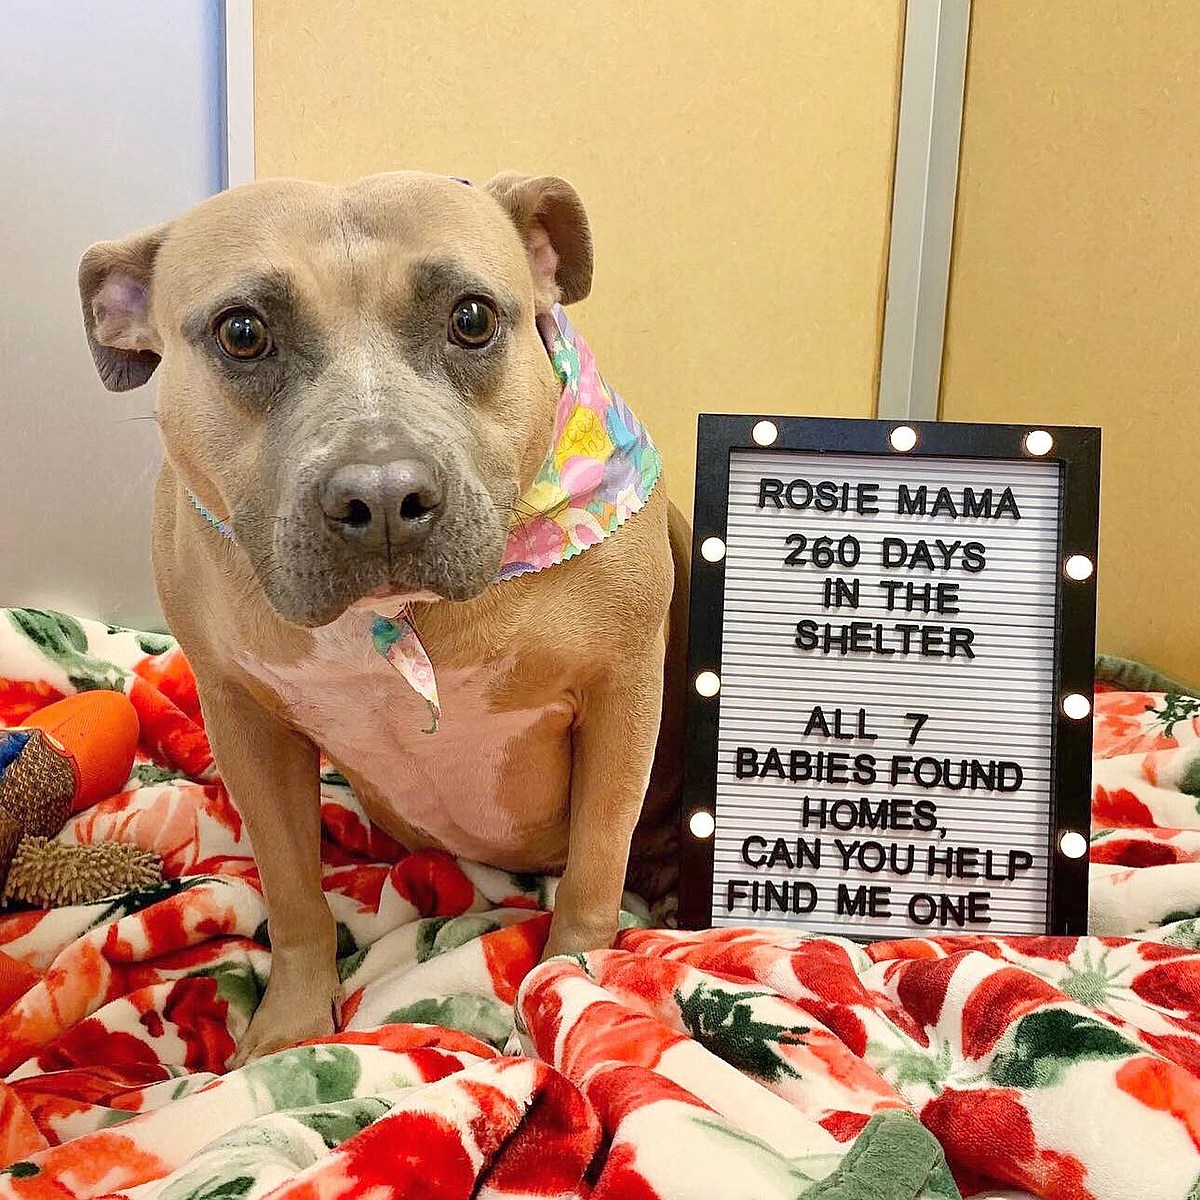 Mama Dog Overlooked in a Shelter for Over 260 Days